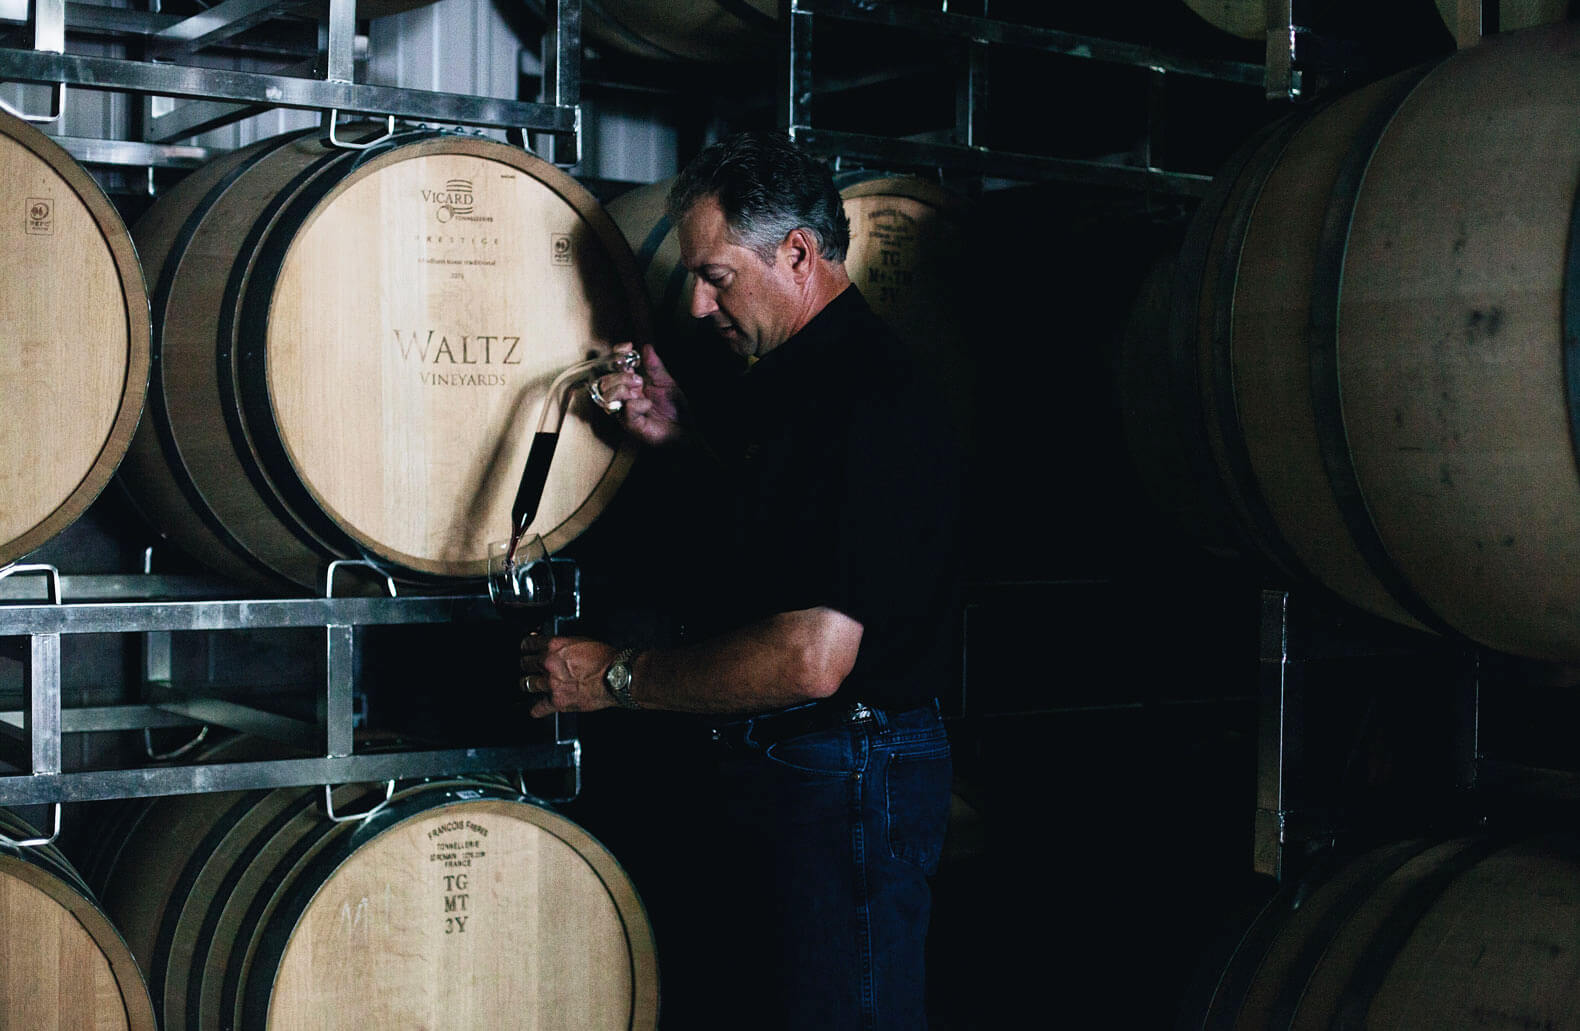 Jan waltz testing barrels